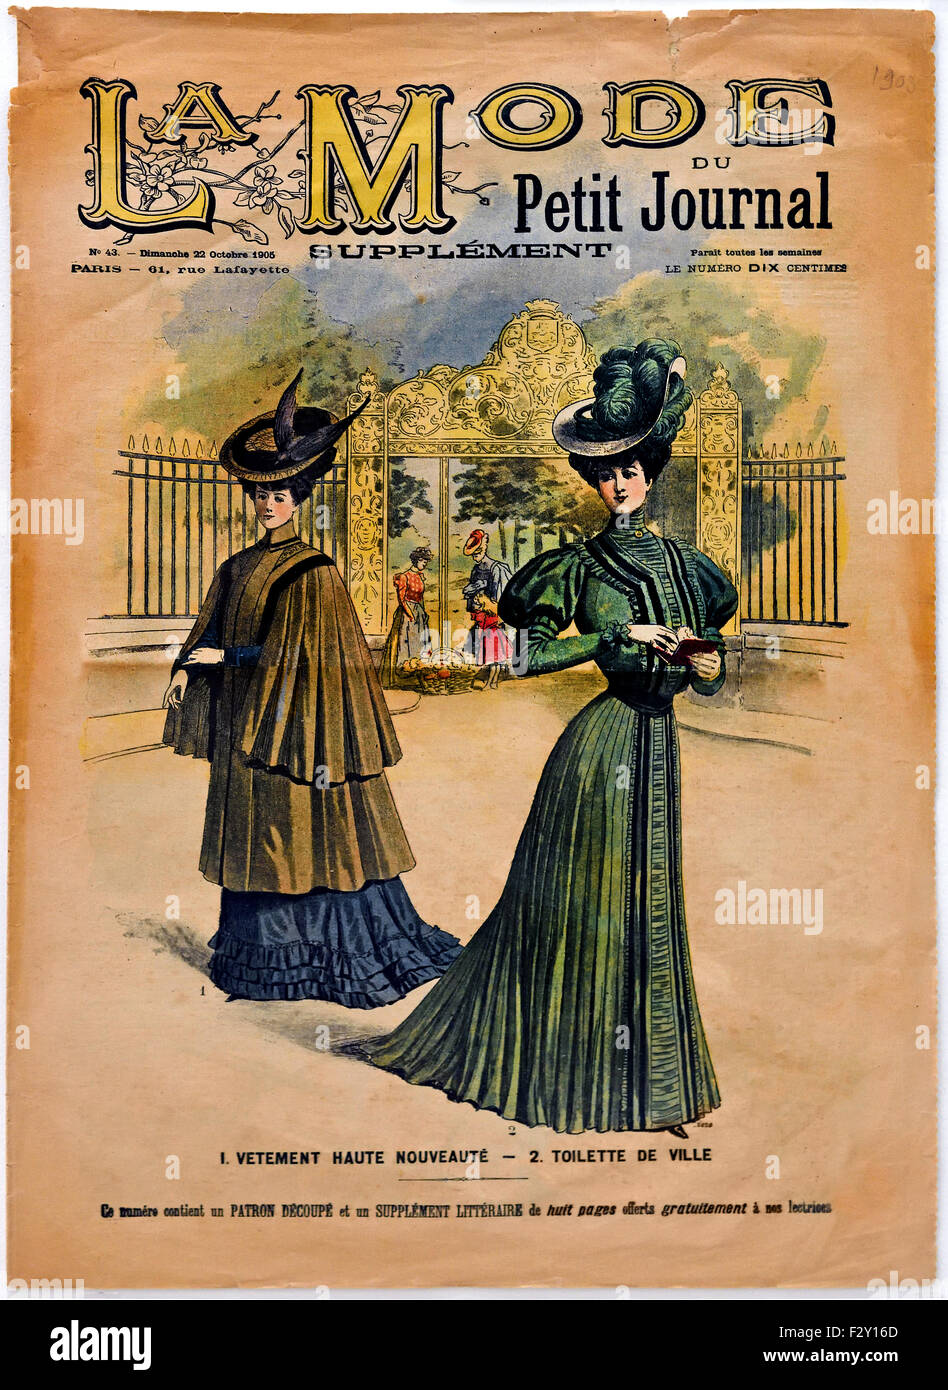 La mode du petit journal 1906 french paris fashion couture designer stock pho - Le journal de la mode ...